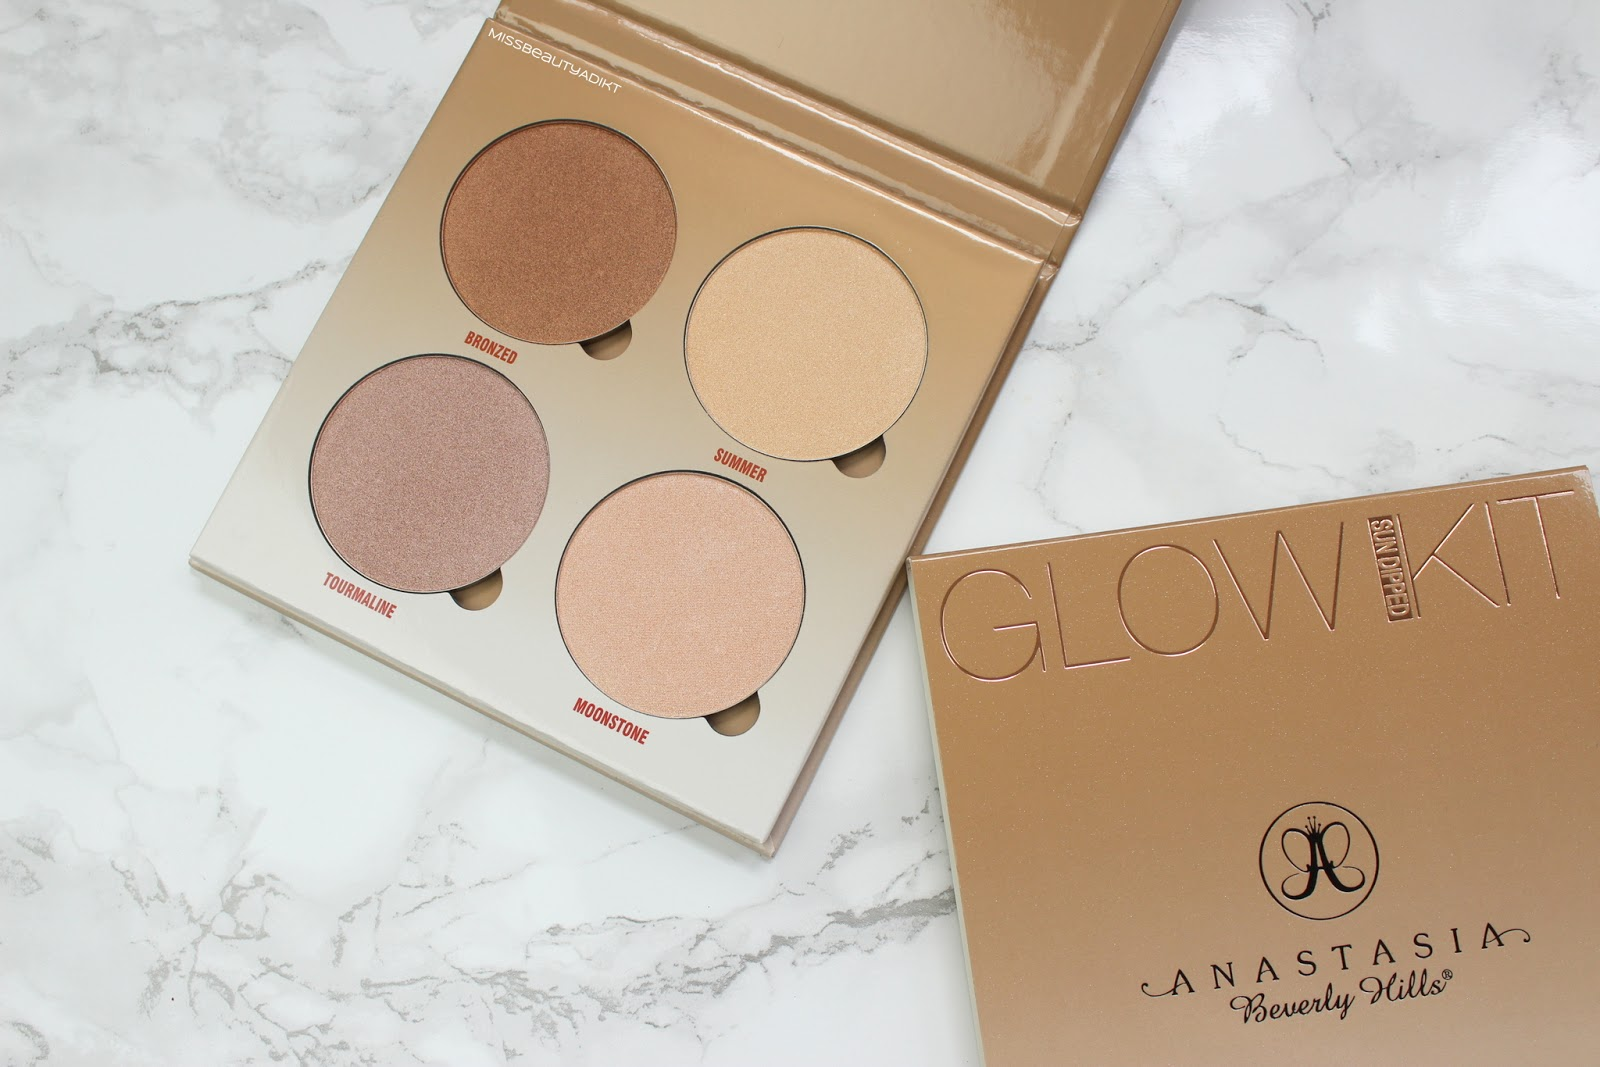 Anastasia Beverly Hills Sun Dipped Glow Kit Review + Swatches